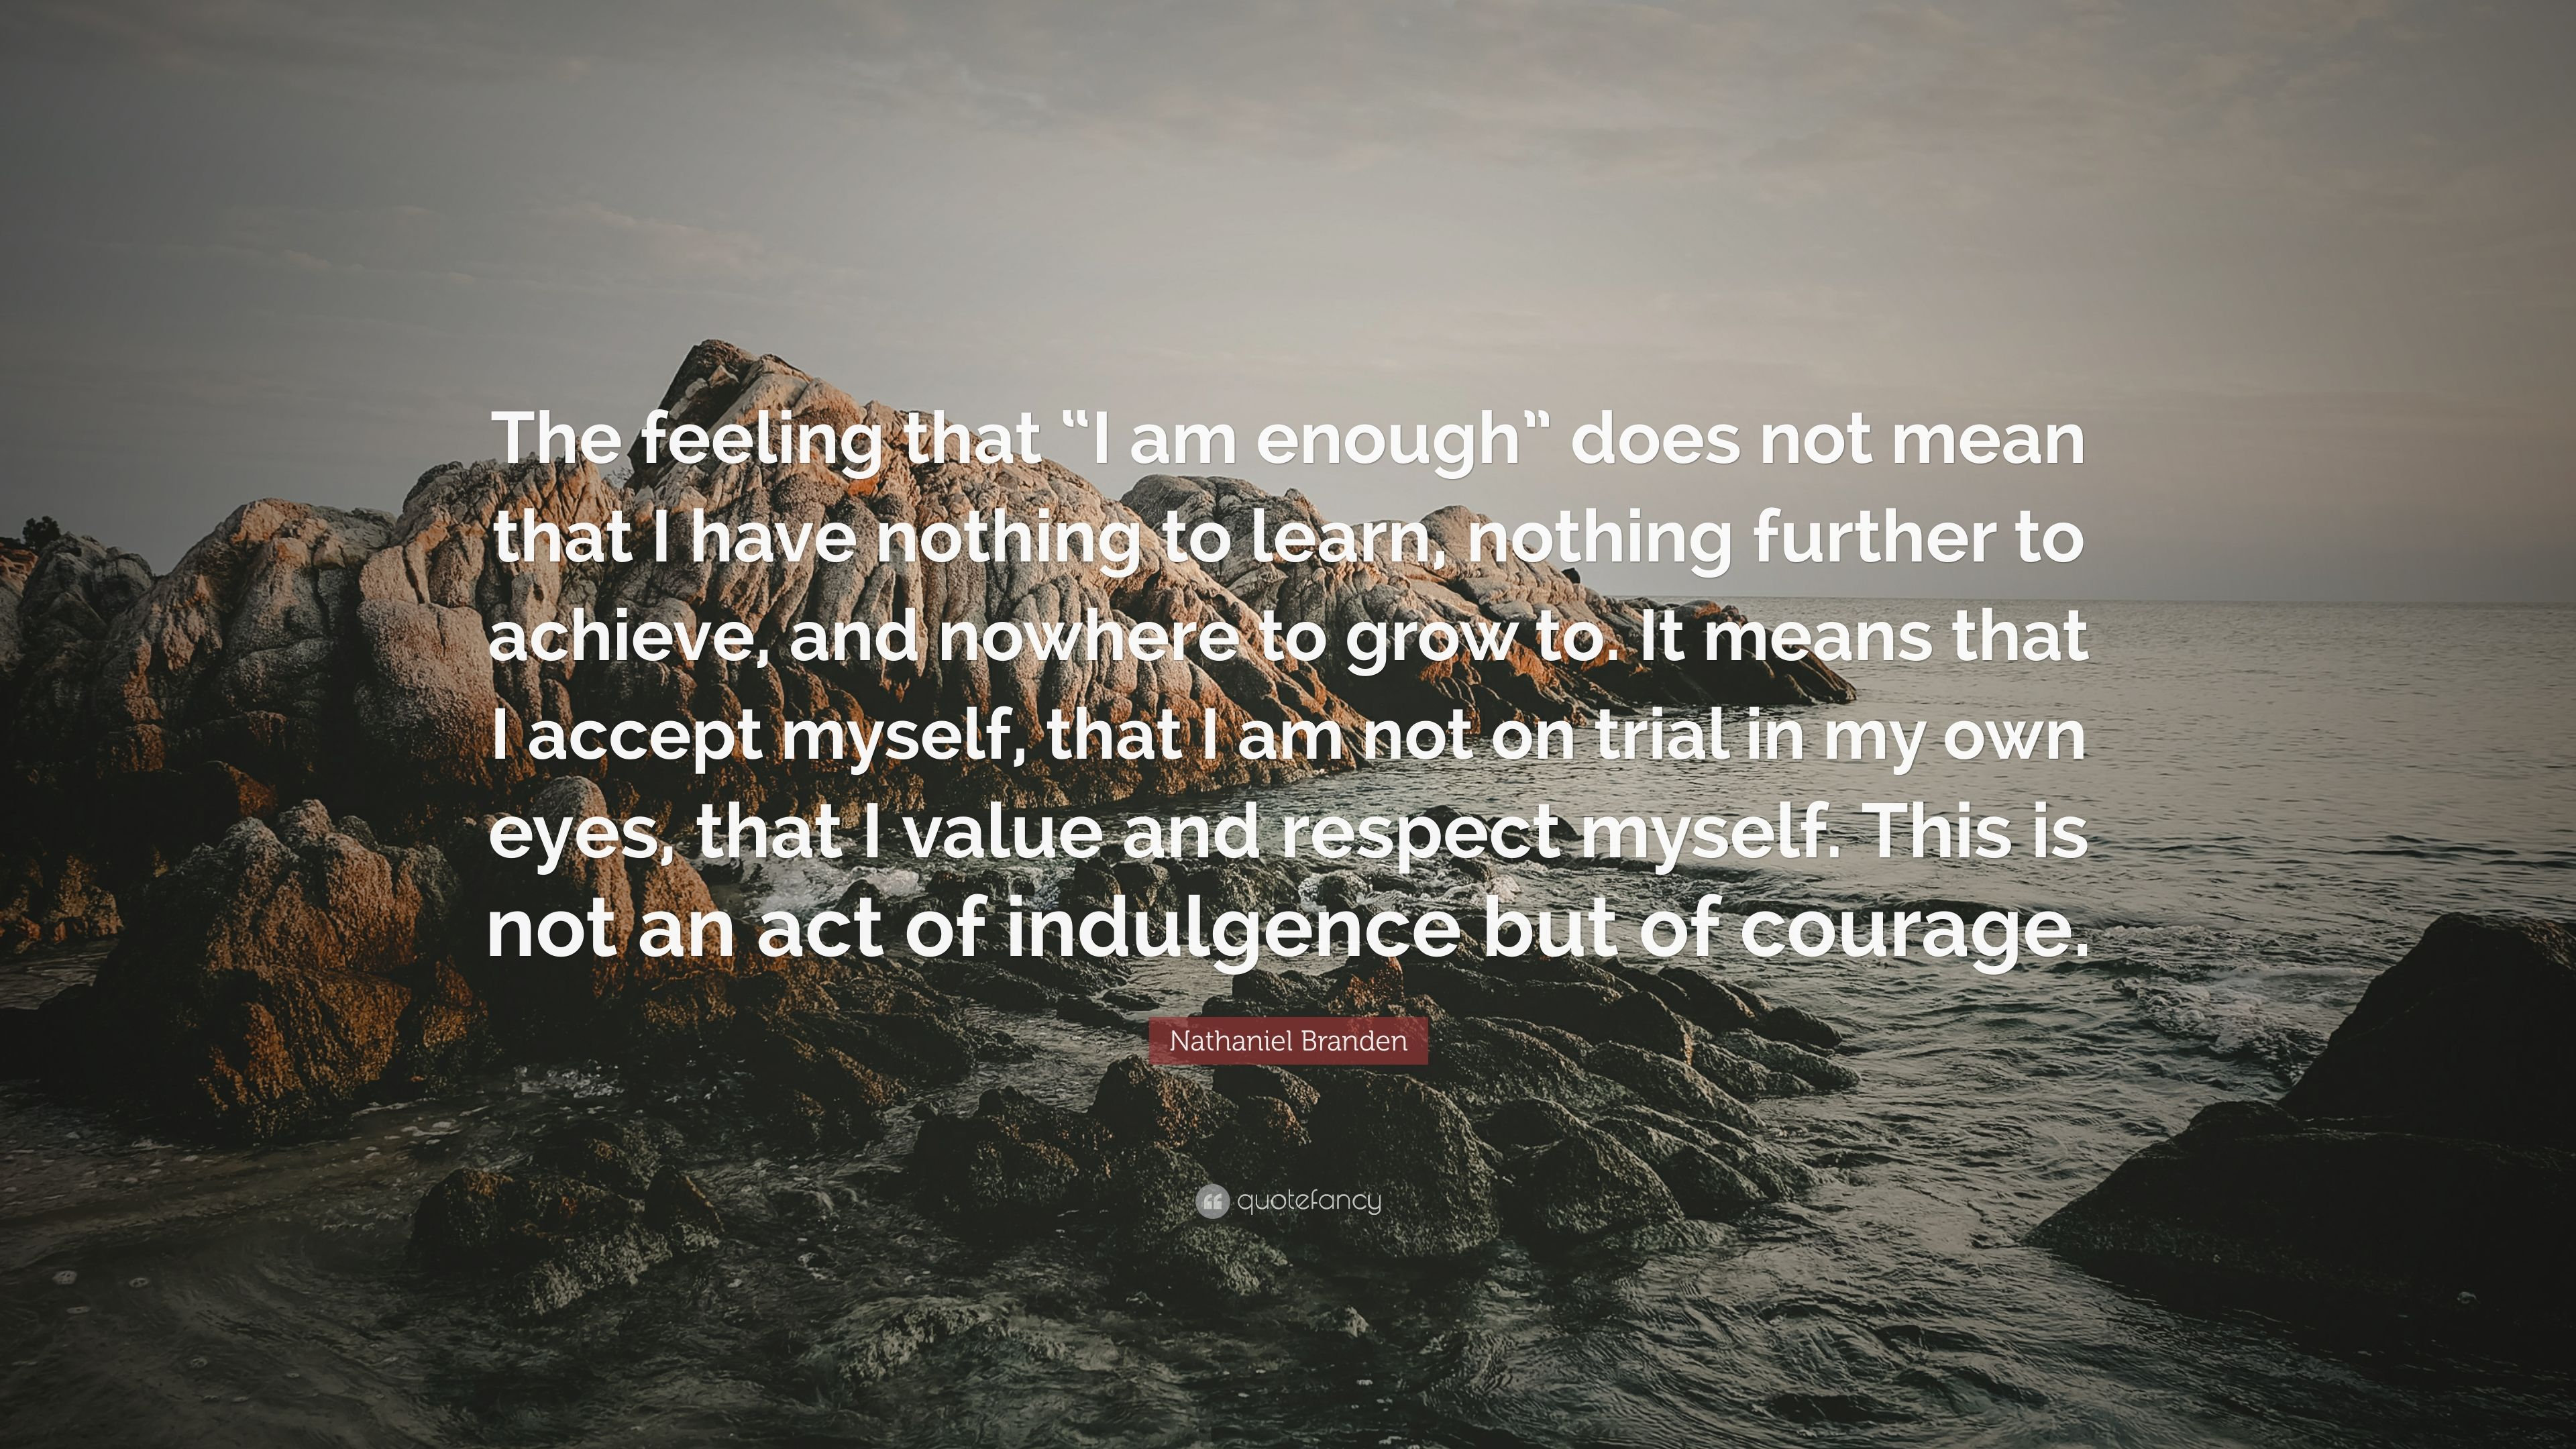 nathaniel branden quote the feeling that i am enough does not